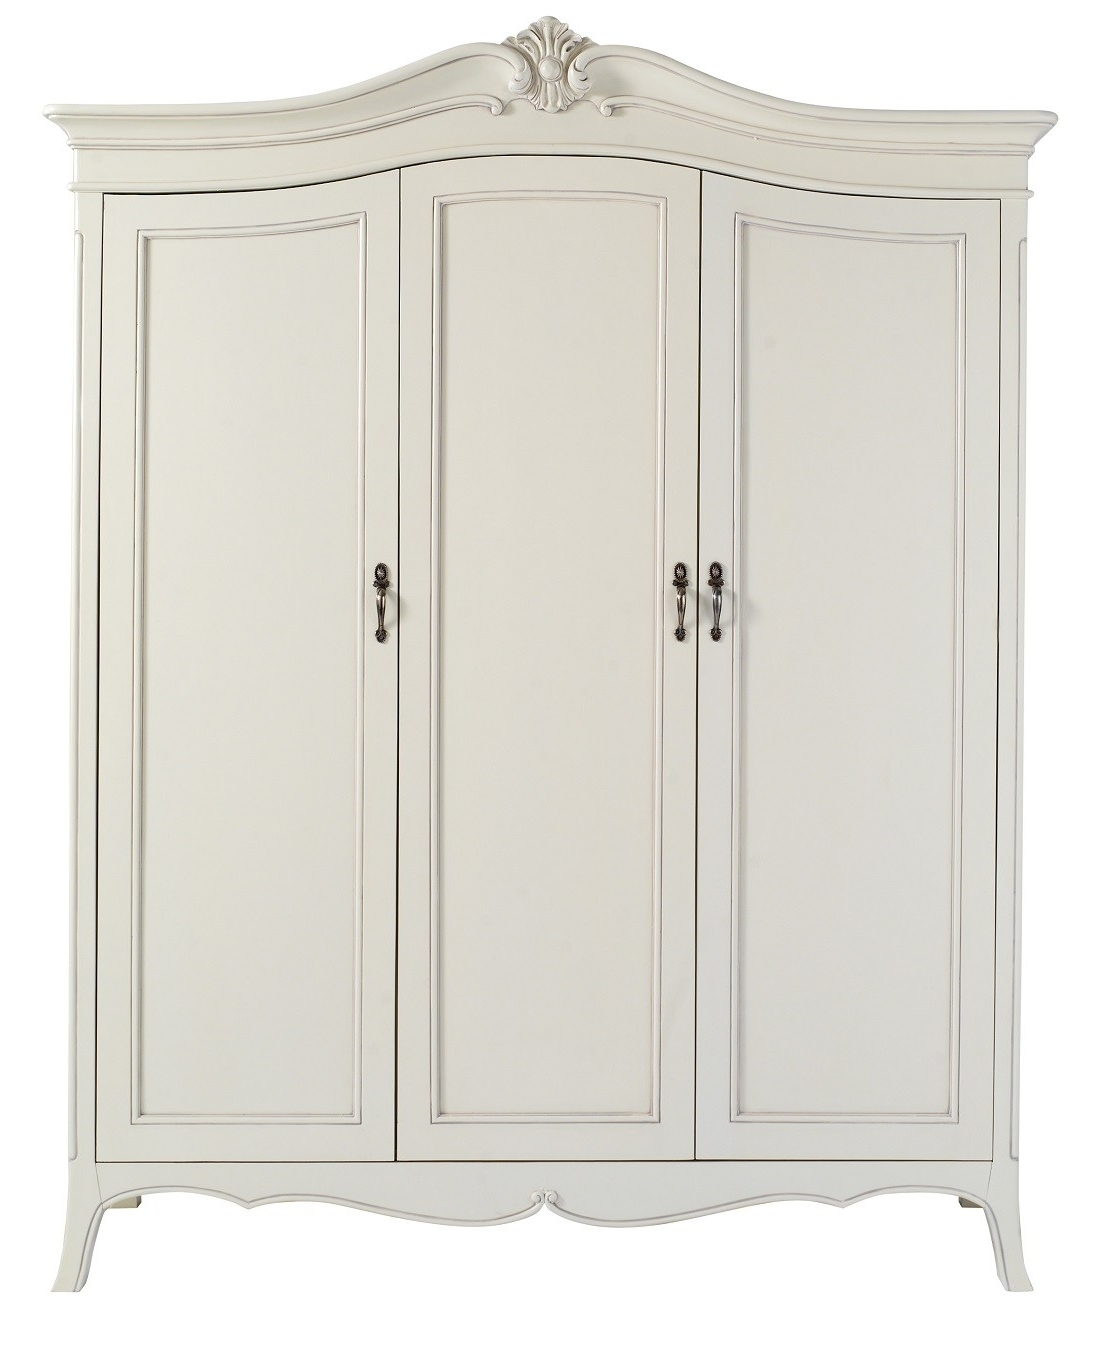 Oak Furniture Uk Within Ivory Wardrobes (View 13 of 15)